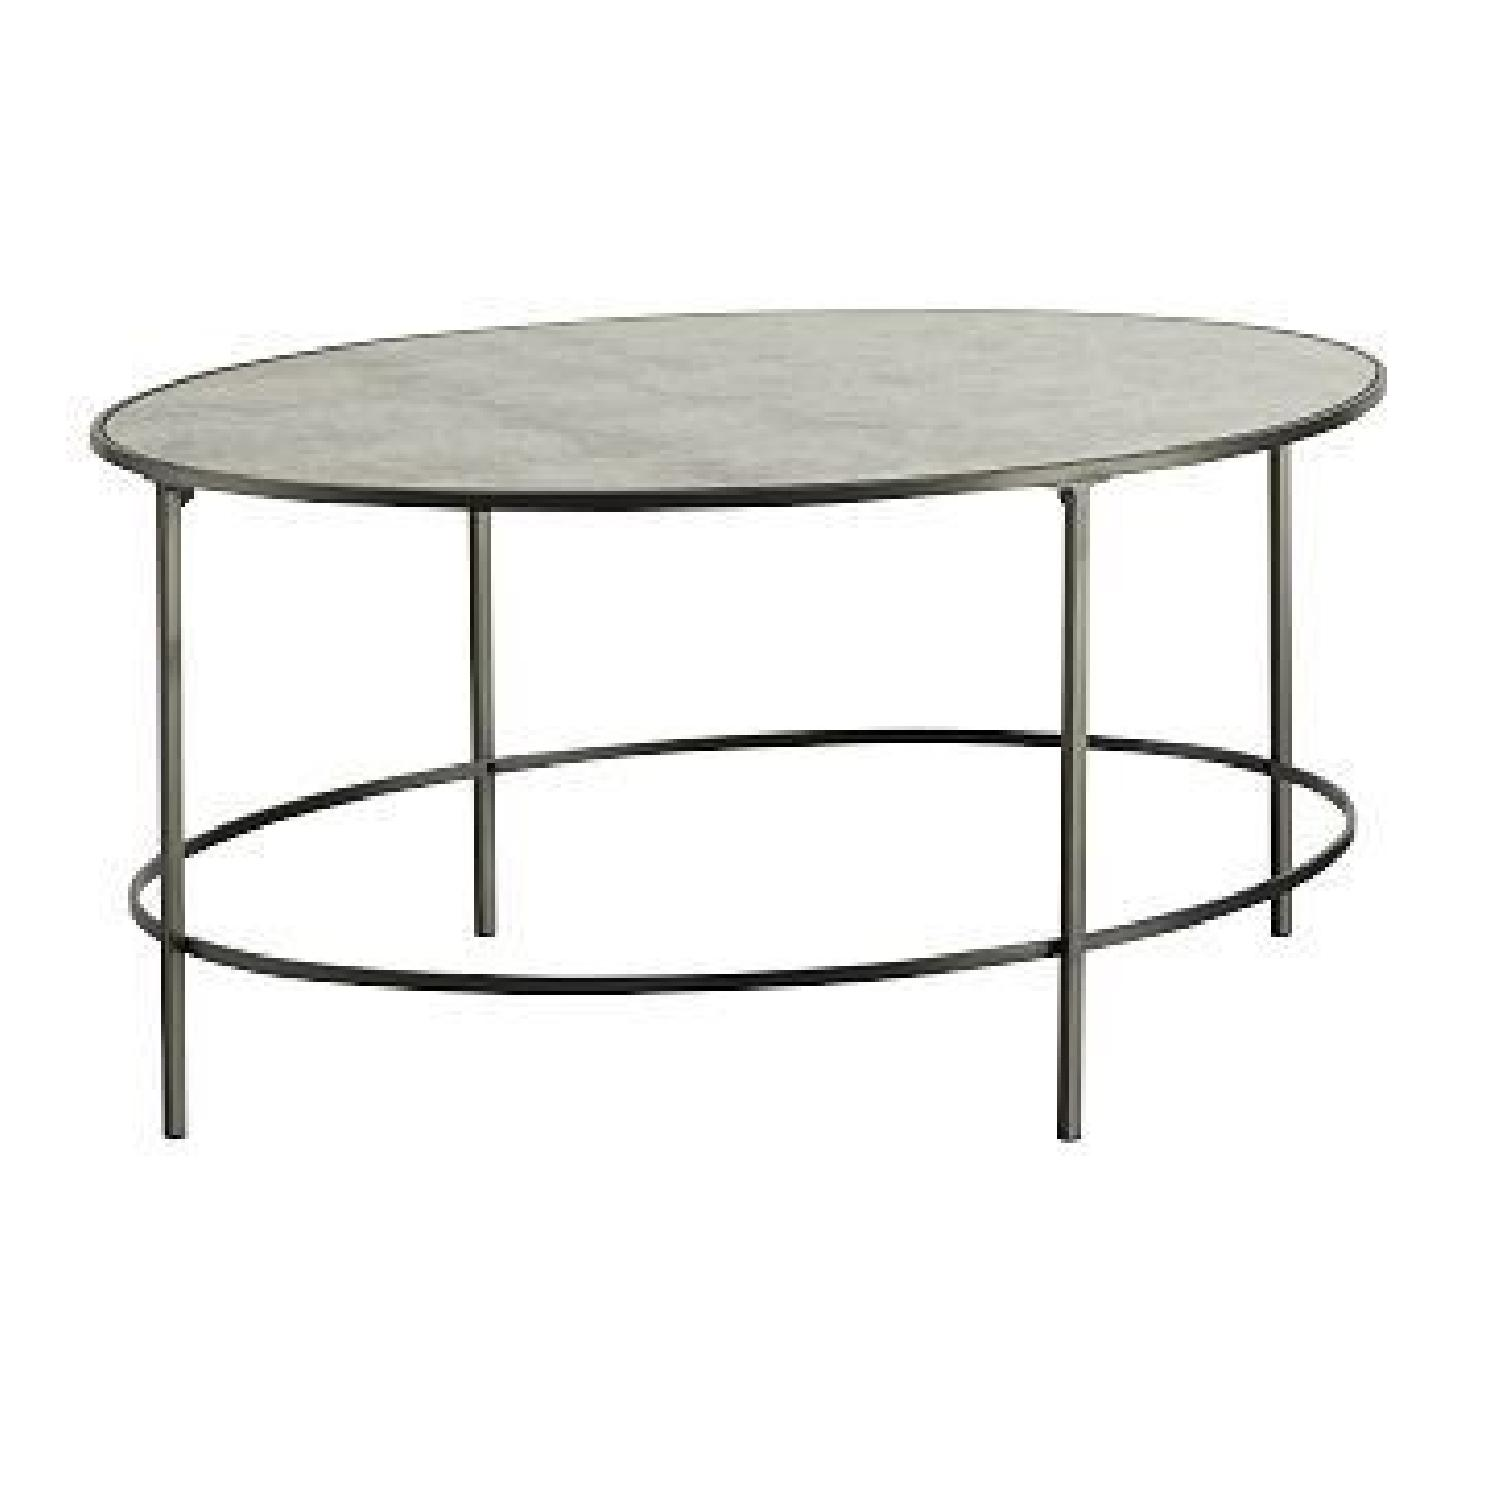 West Elm Foxed Mirror Oval Coffee Table